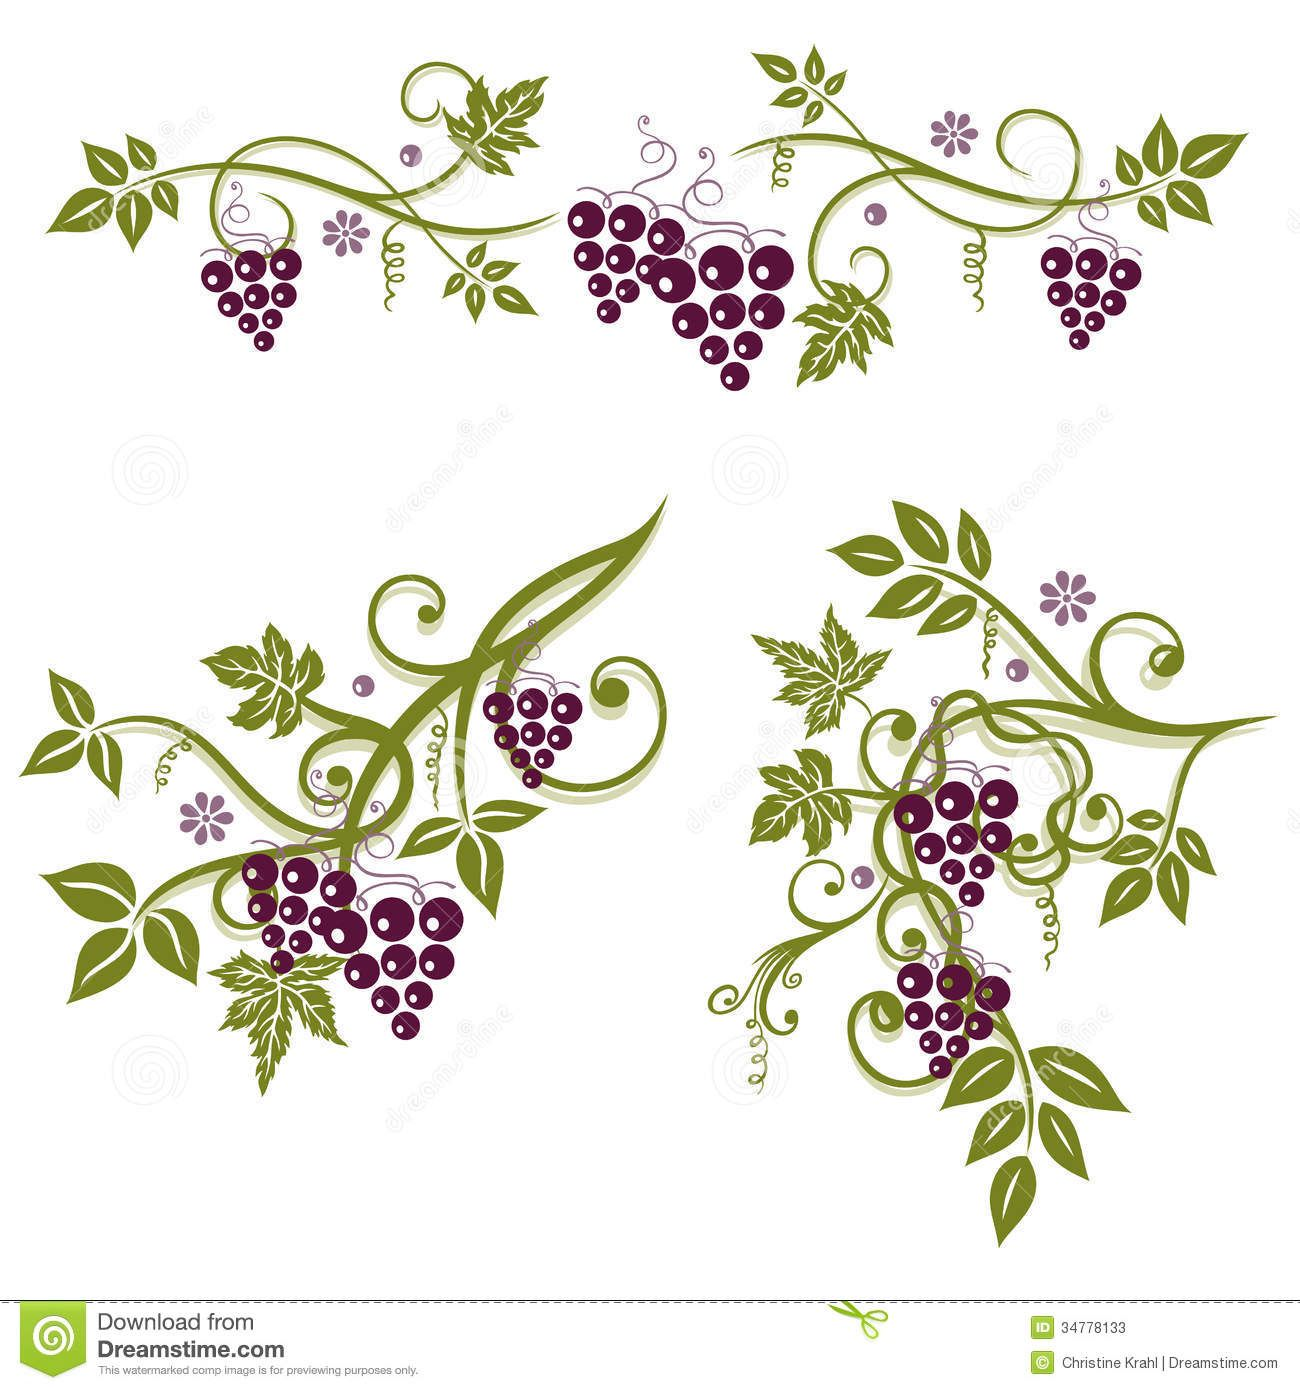 hight resolution of grape vines image 5 clipart free clip art images